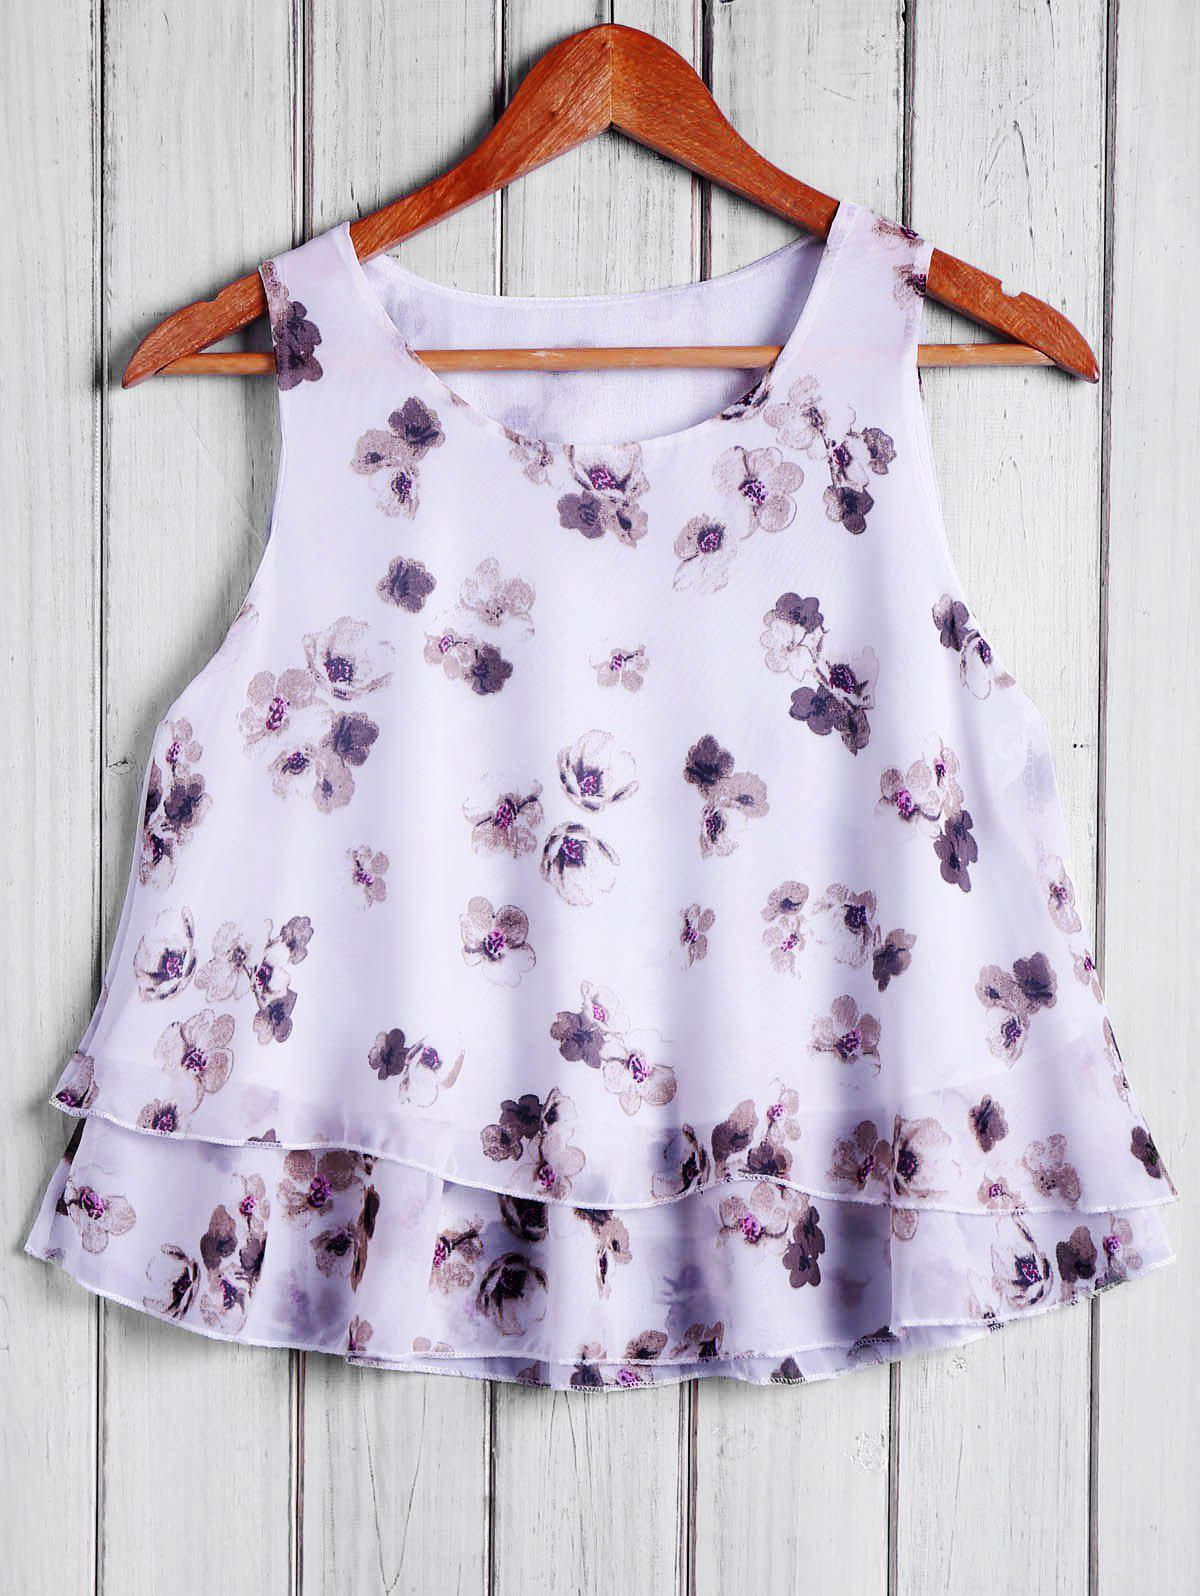 Fashionable Round Collar Chiffon Tiny Floral Print Women's Tank Top - WHITE ONE SIZE(FIT SIZE XS TO M)